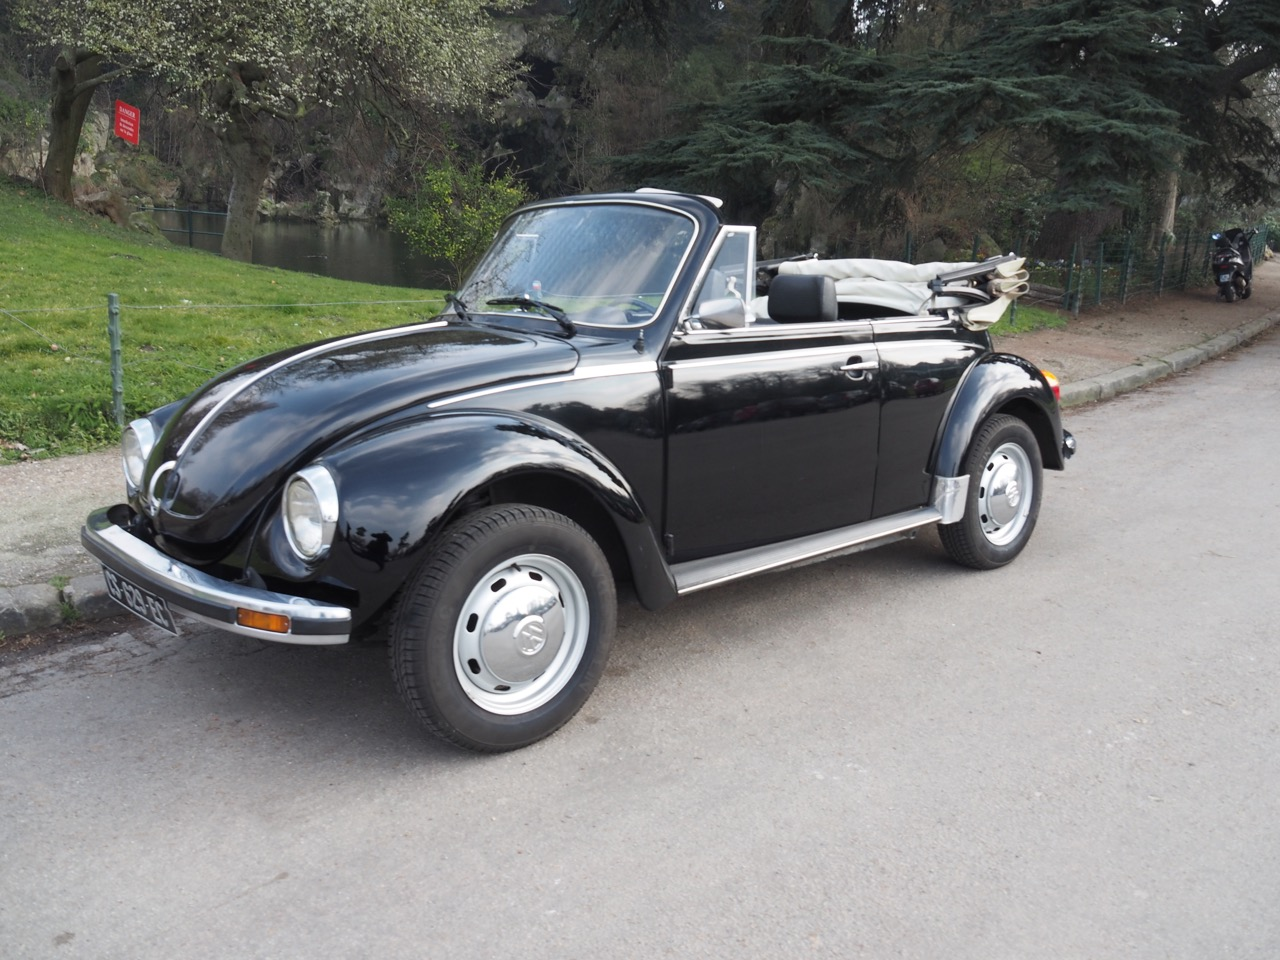 volkswagen coccinelle 1303 cabriolet the collection listings. Black Bedroom Furniture Sets. Home Design Ideas